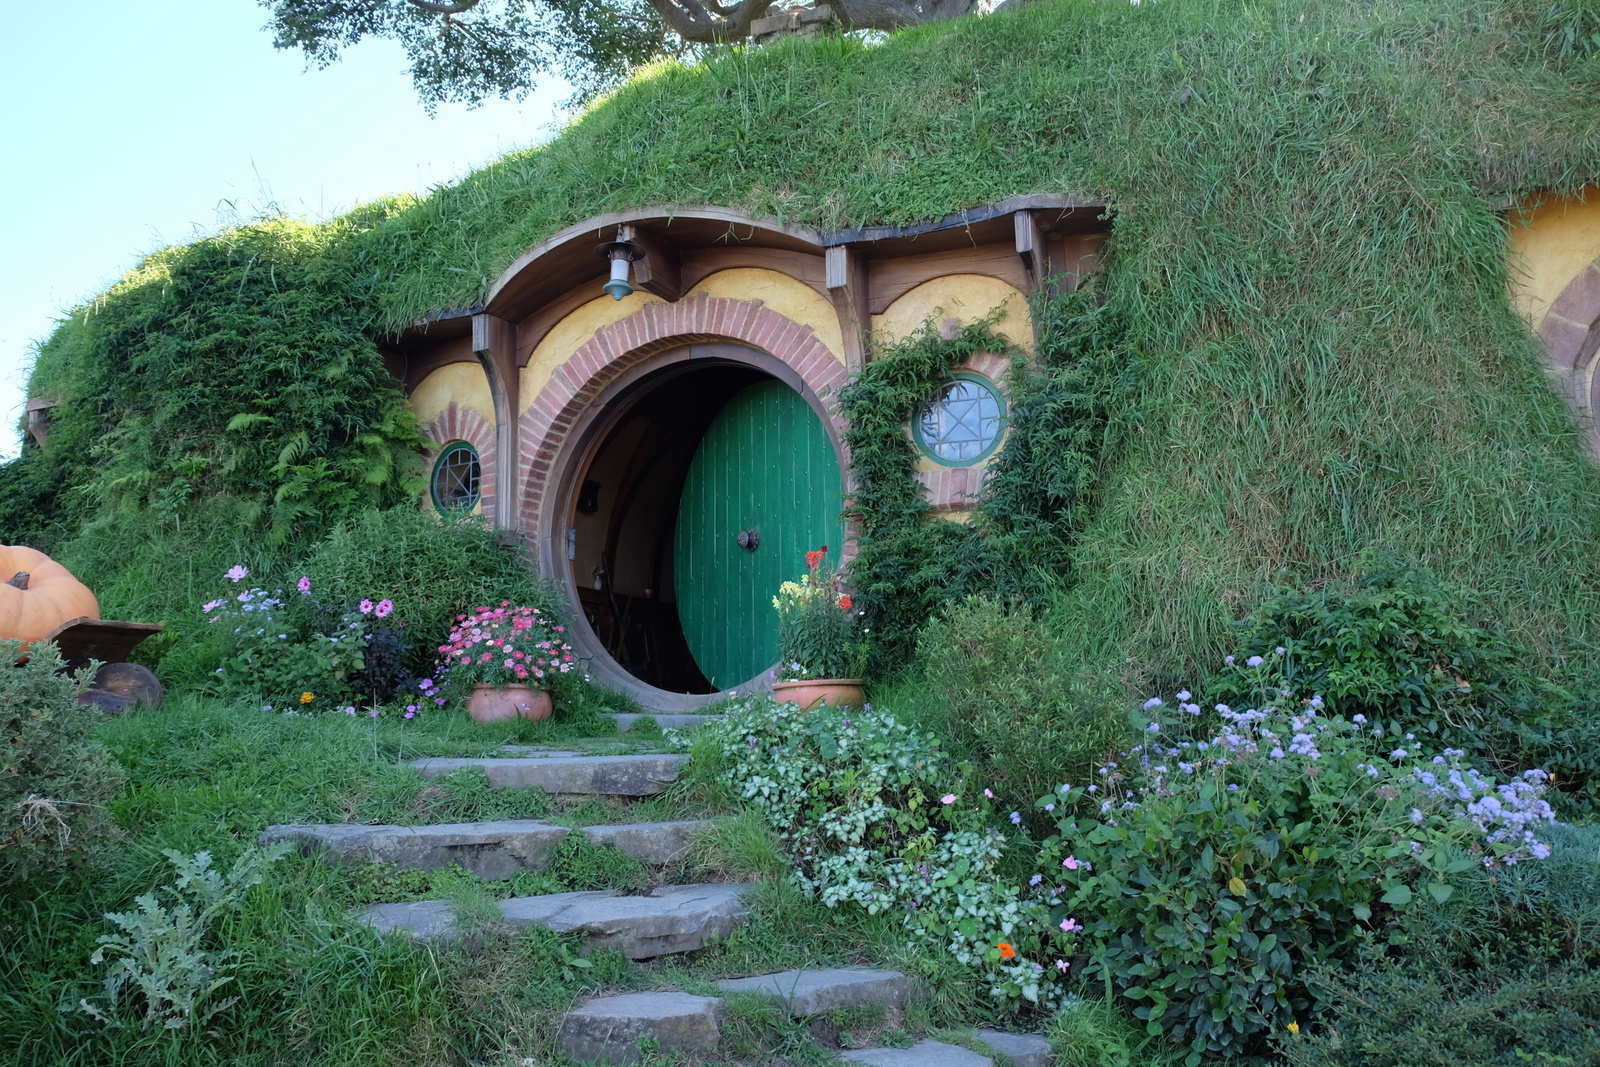 The Hobbiton Movie Set Tour is a fantastic attraction in New Zealand. - JIM BYERS PHOTO